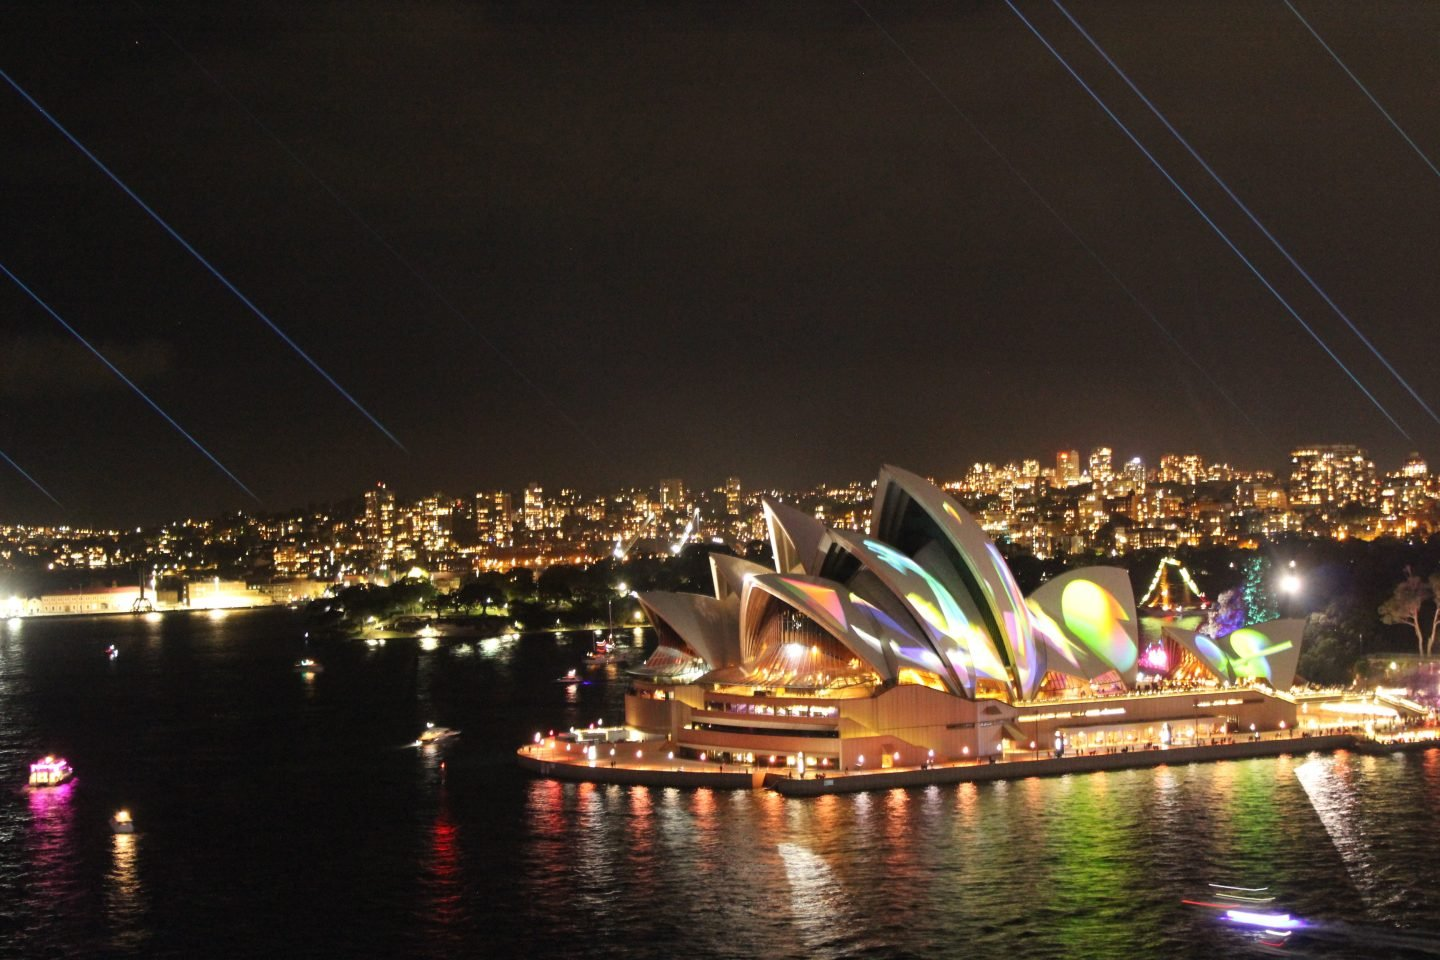 Sydney travel guide - Vivid